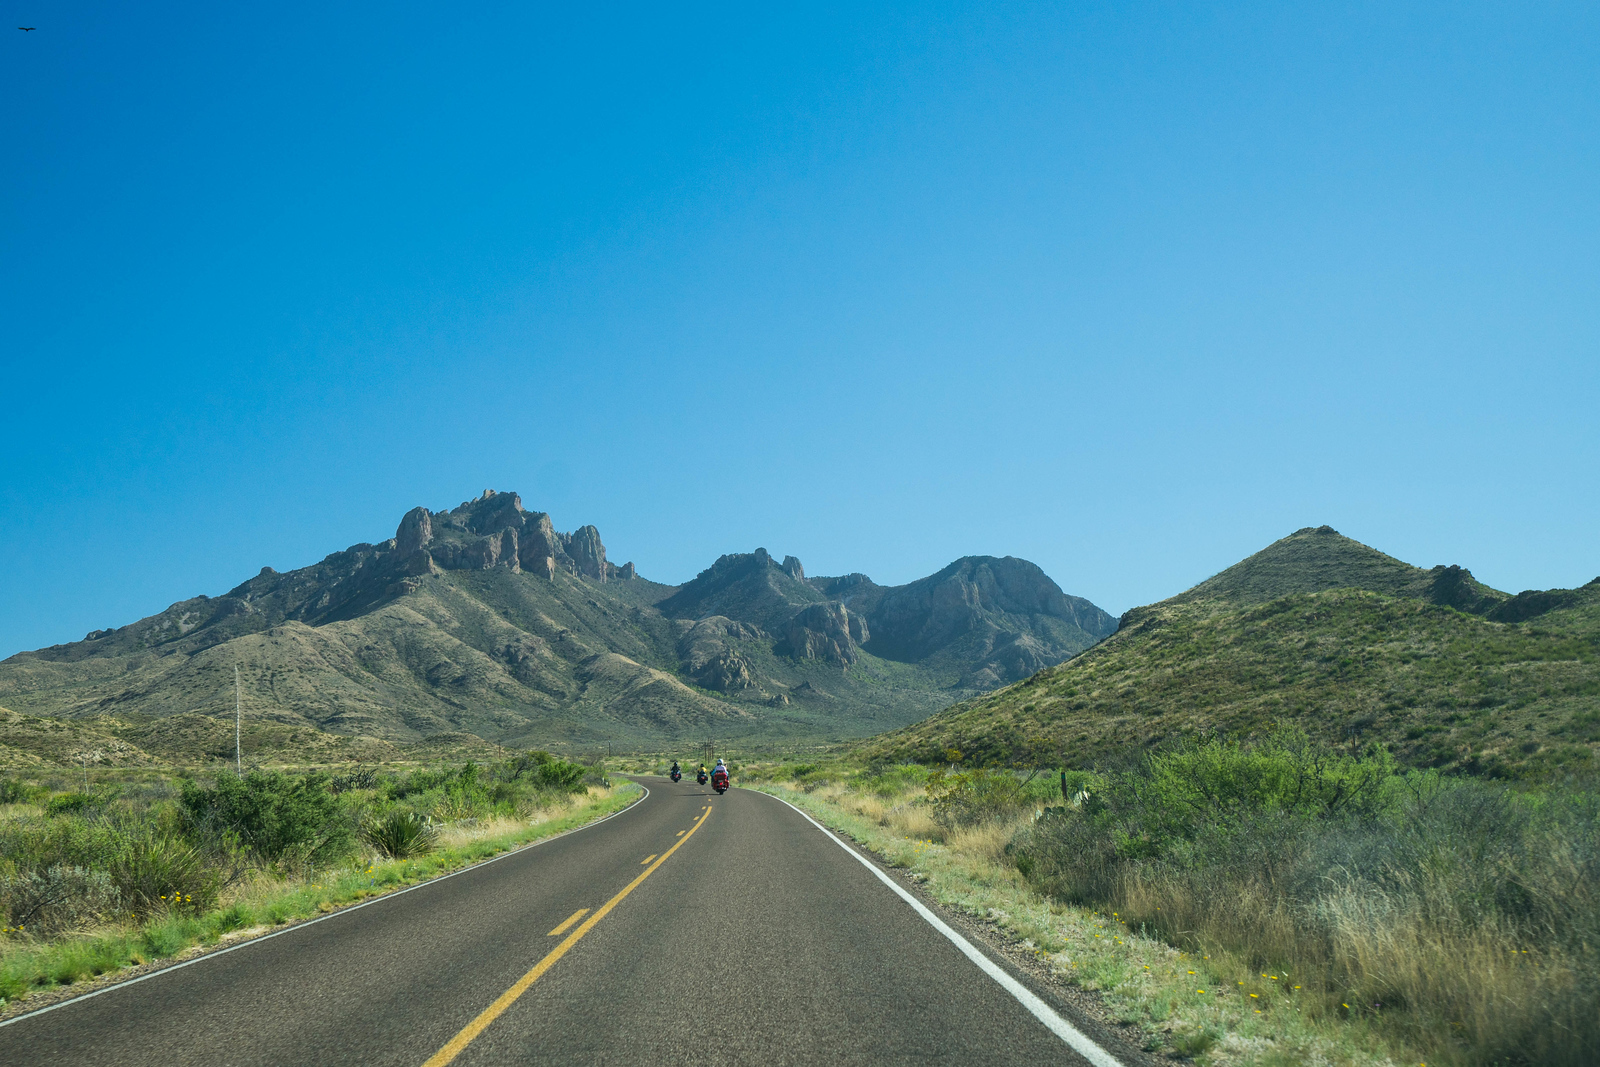 The Arid Trails of Big Bend National Park